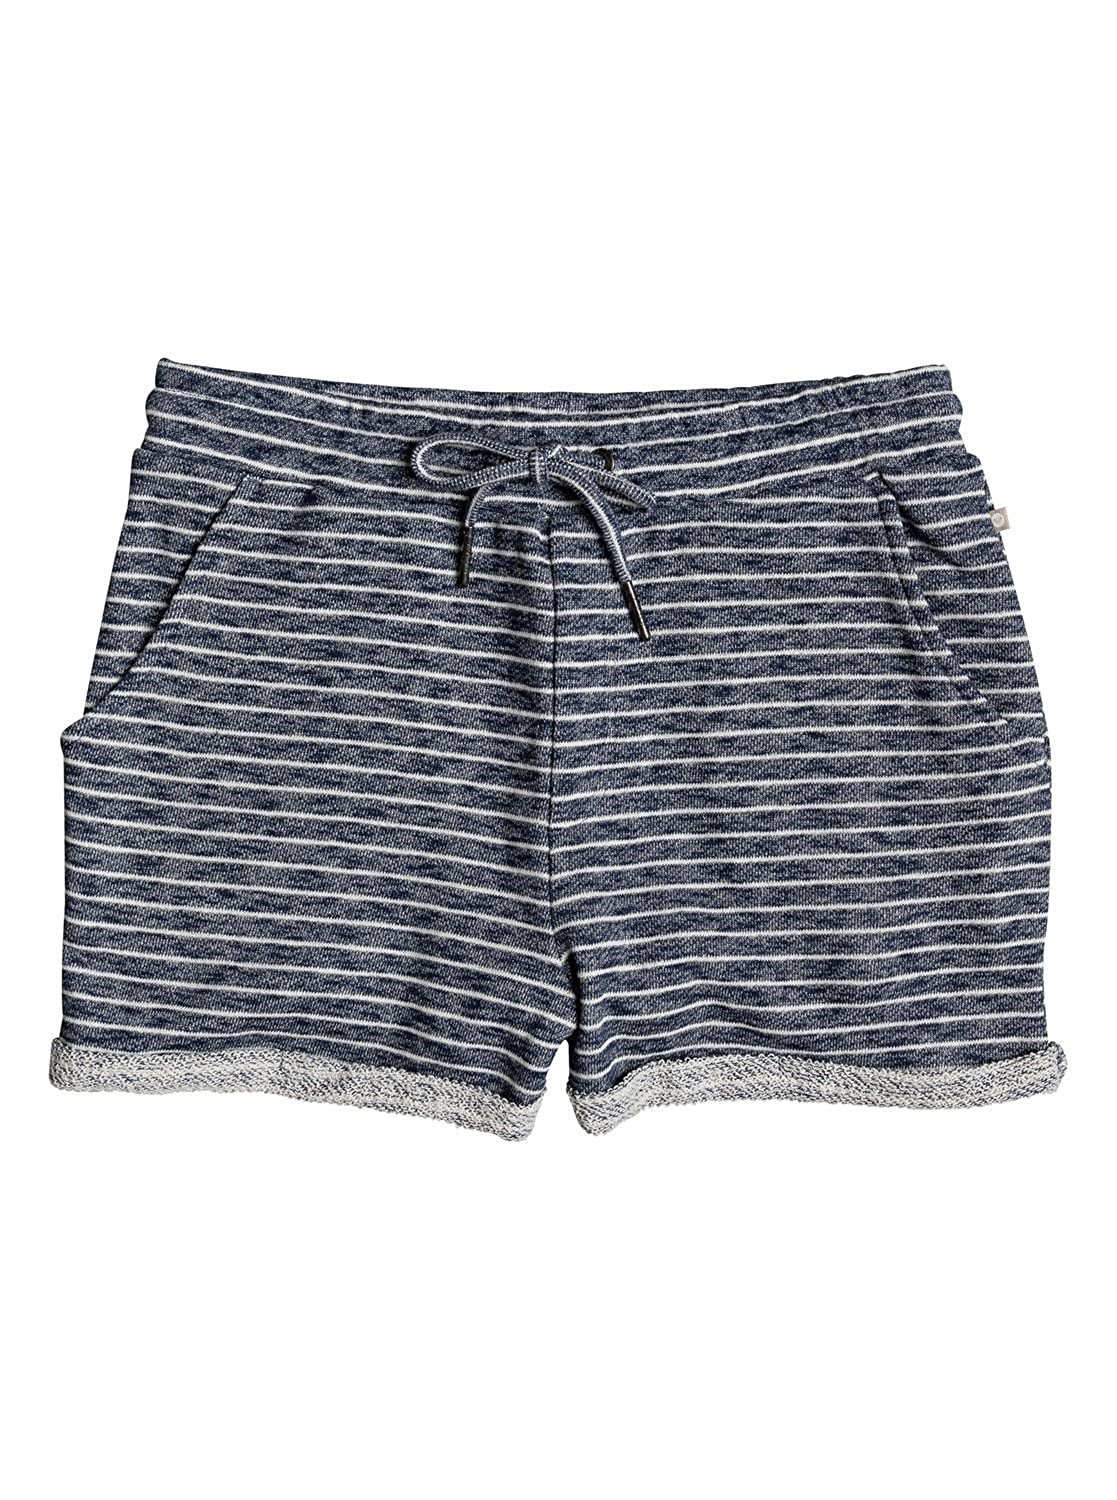 Roxy Damen Trippinshortstr J Otlr Wbt5 Fleece Bottom